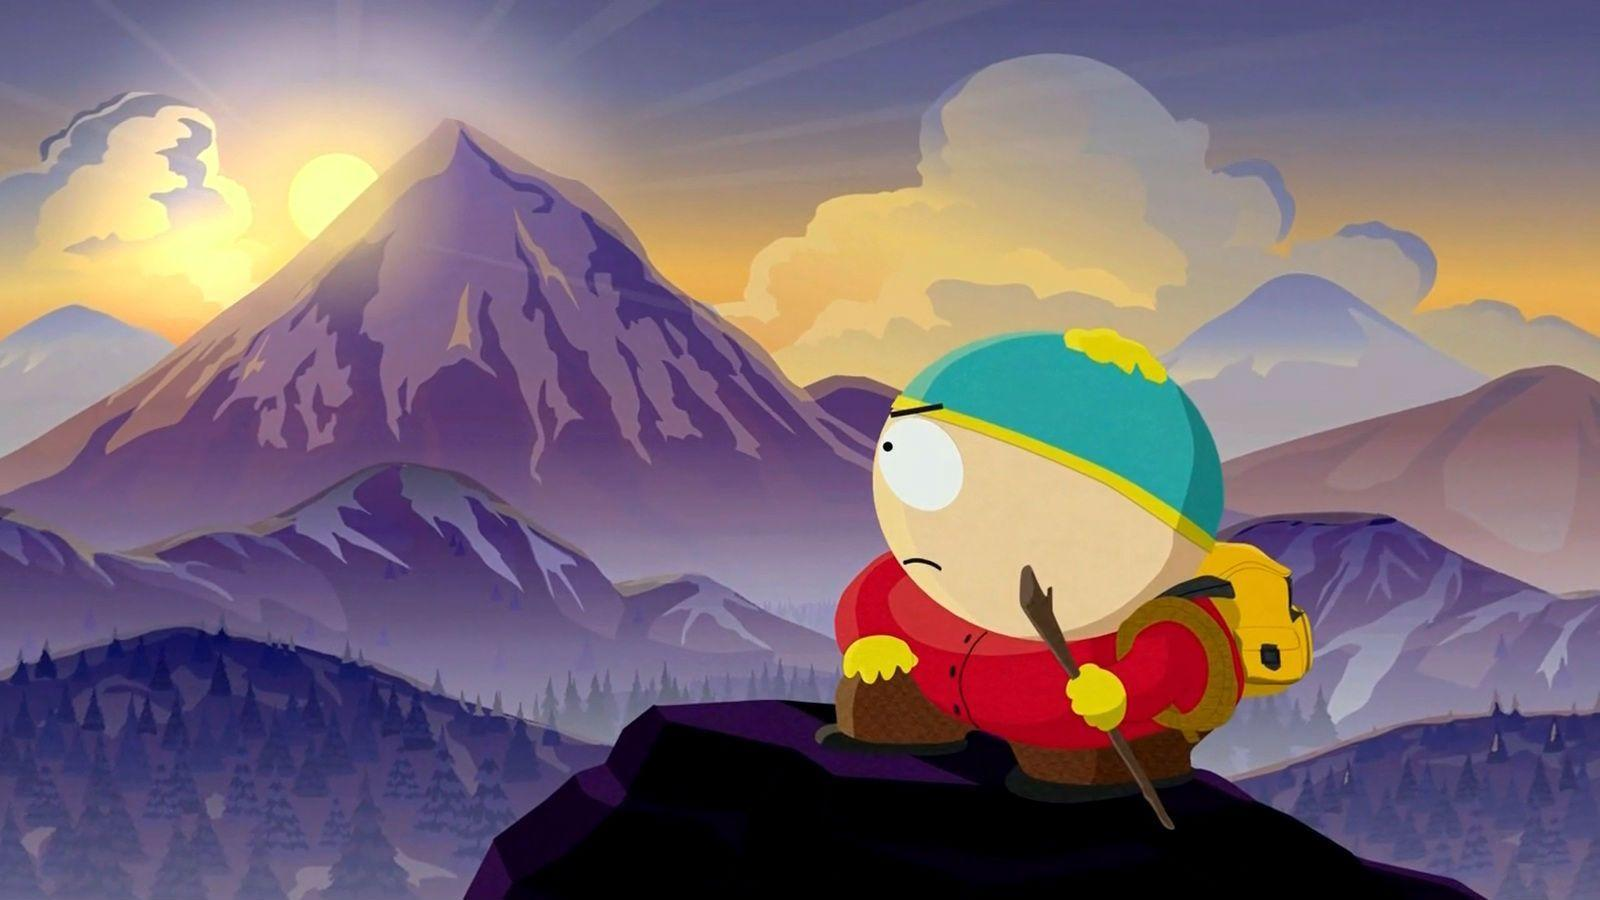 South Park Computer Wallpapers, Desktop Backgrounds 1600x900 Id ...